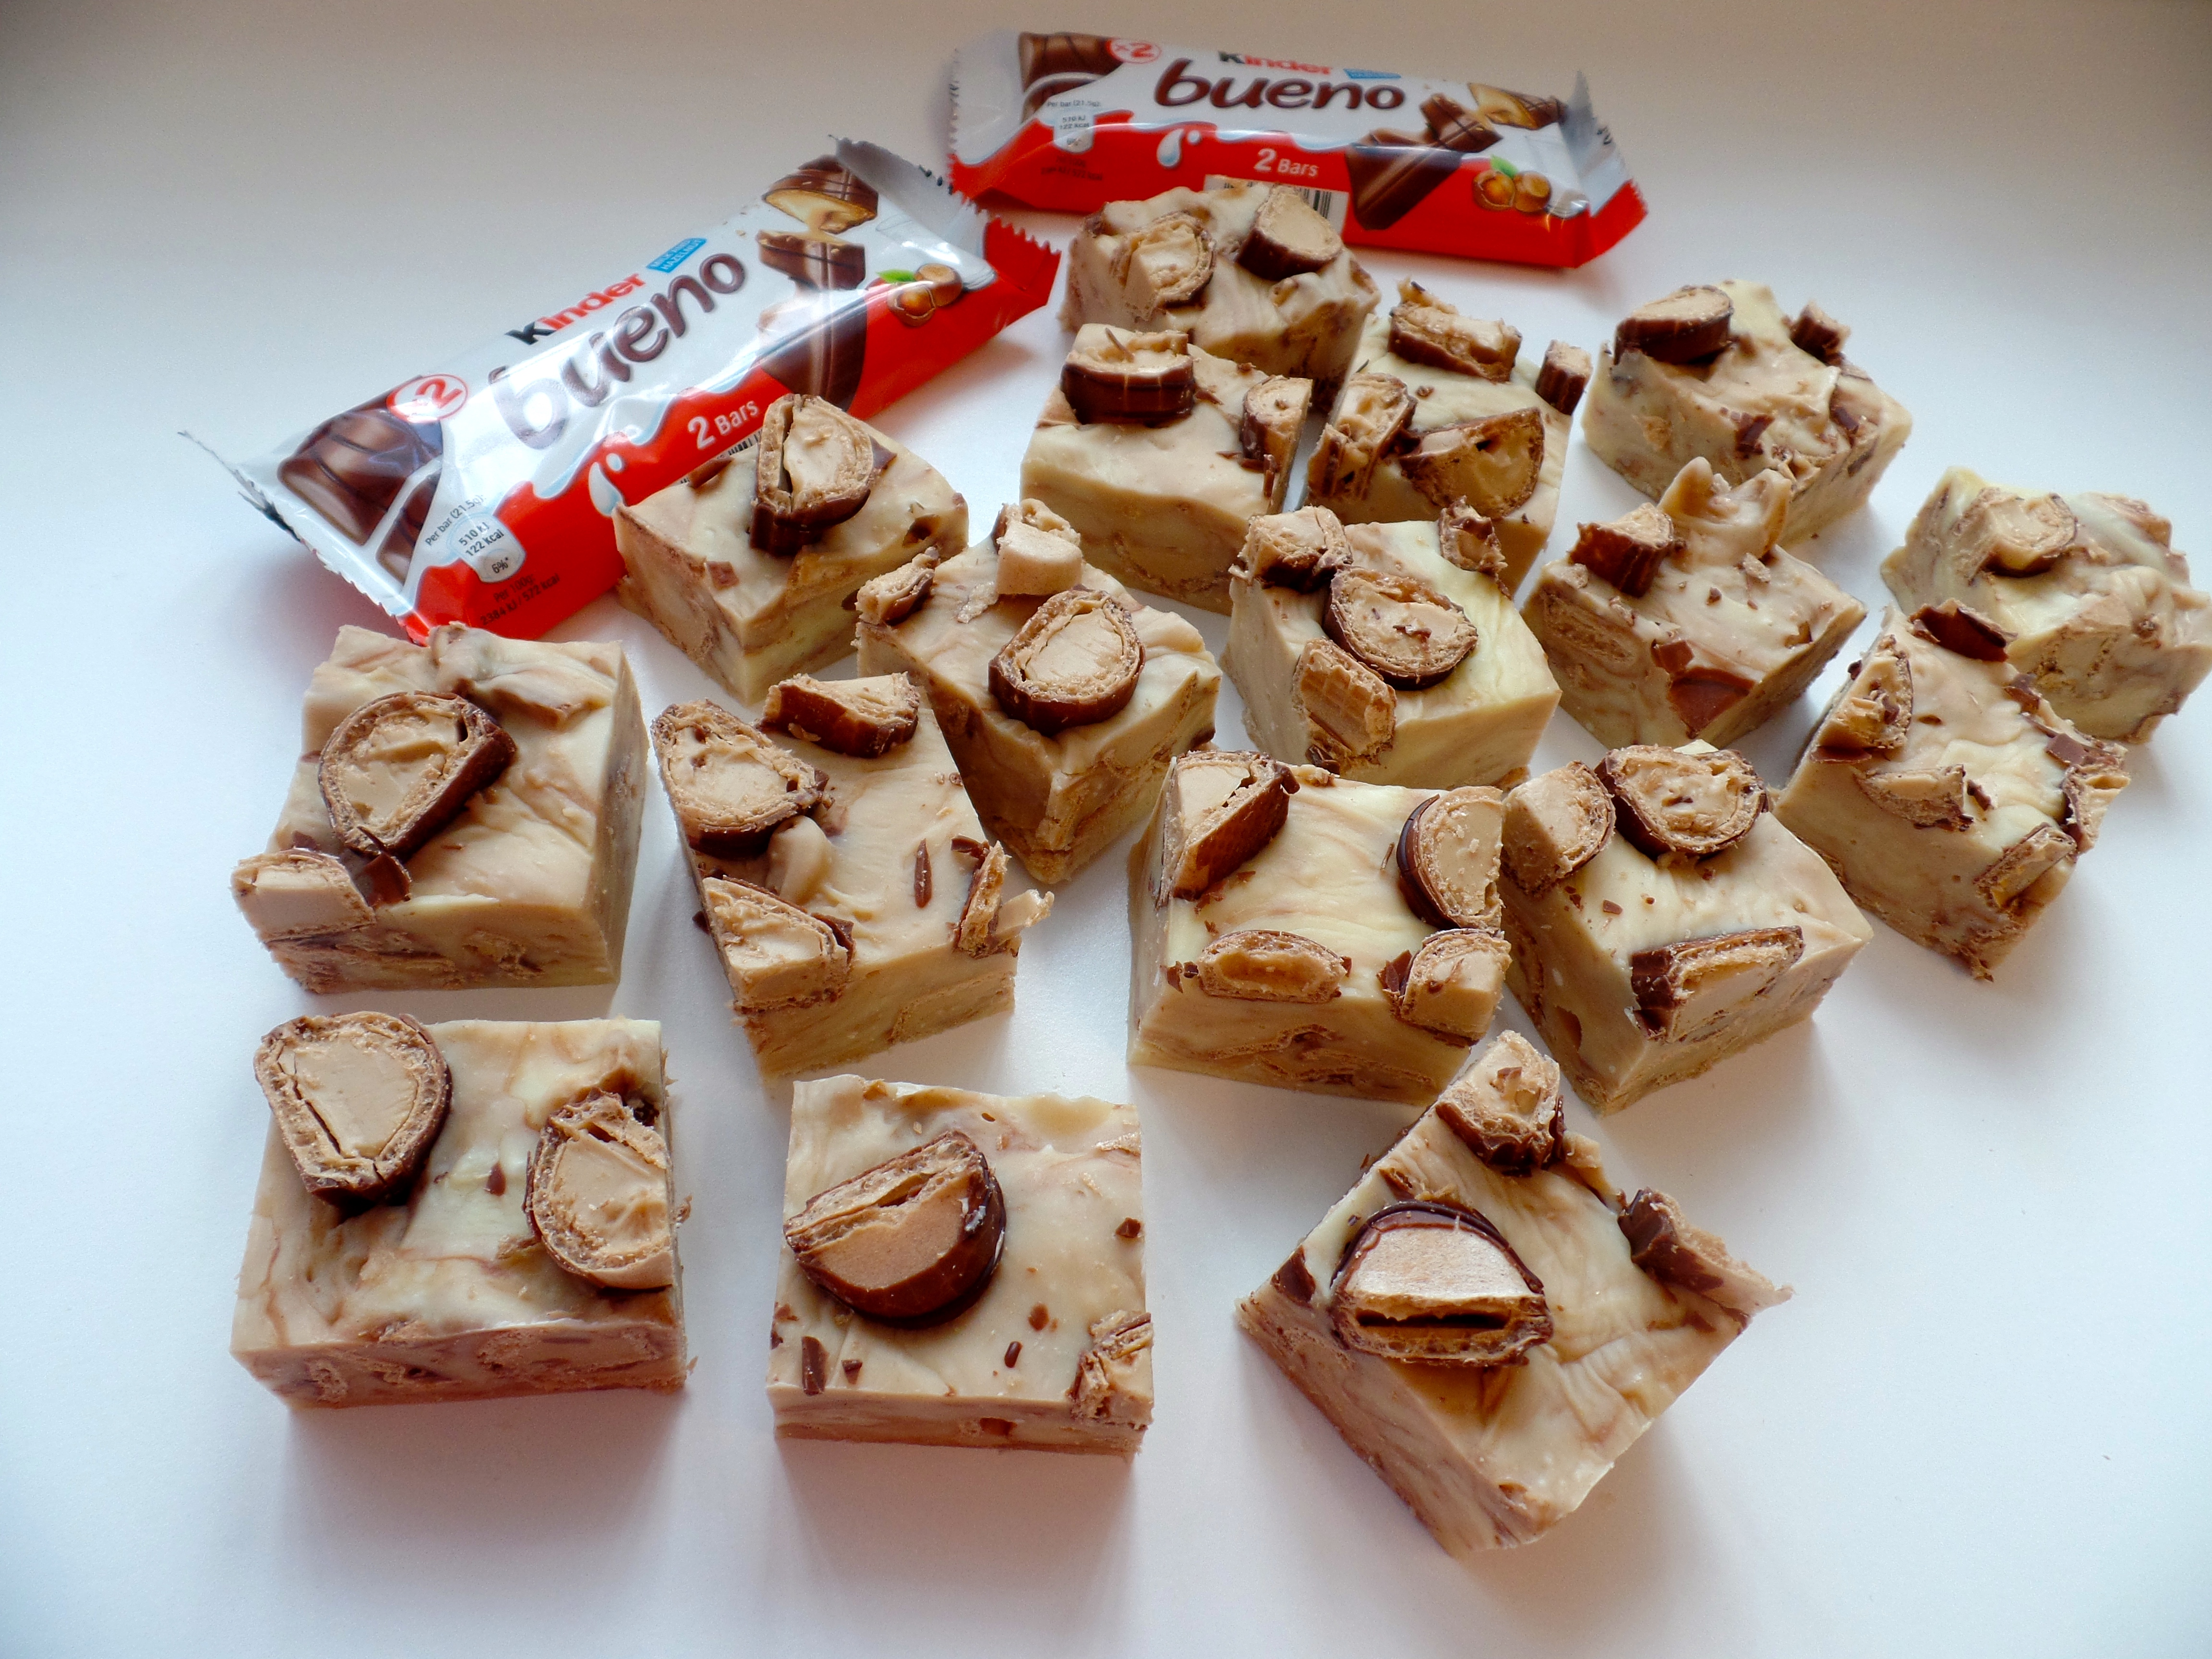 "marketing mix kinder bueno marketing essay Kinder bueno (kinder is german for ""children"", bueno is spanish for ""good"" or ""tasty"") is a chocolate bar made by italian confectionery maker ferrero kinder bueno is a hazelnut cream filled wafer with a chocolate covering."